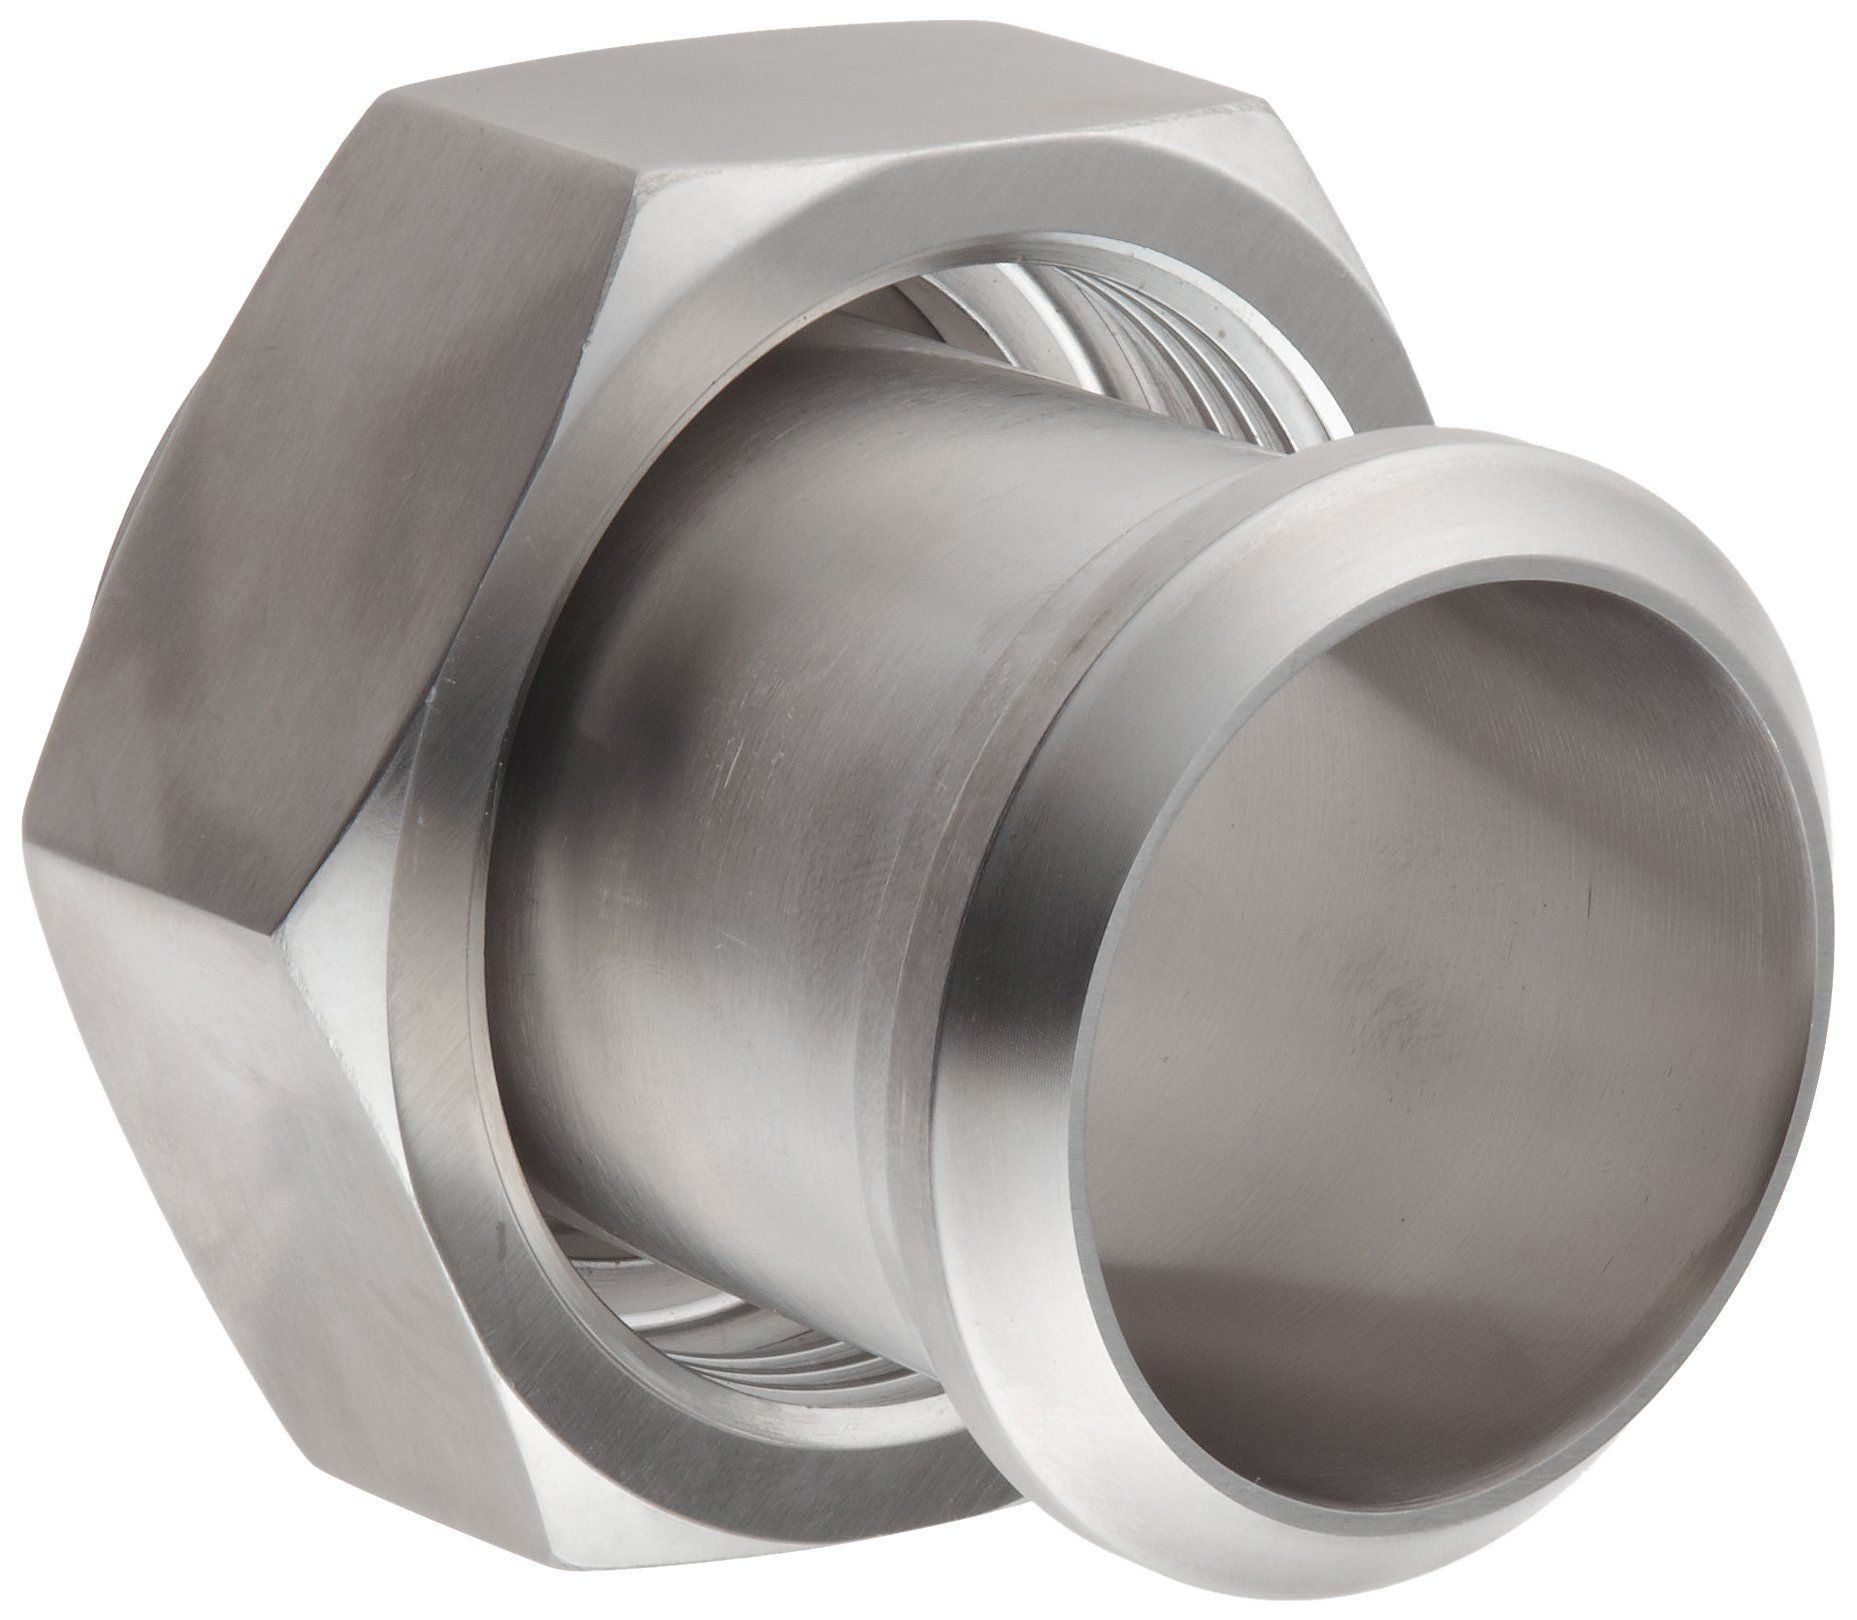 Dixon 17MP-14-G200 Stainless Steel 304 Sanitary Fitting, Plain Bevel Seat Adapter with Hex Nut, 2'' Tube OD